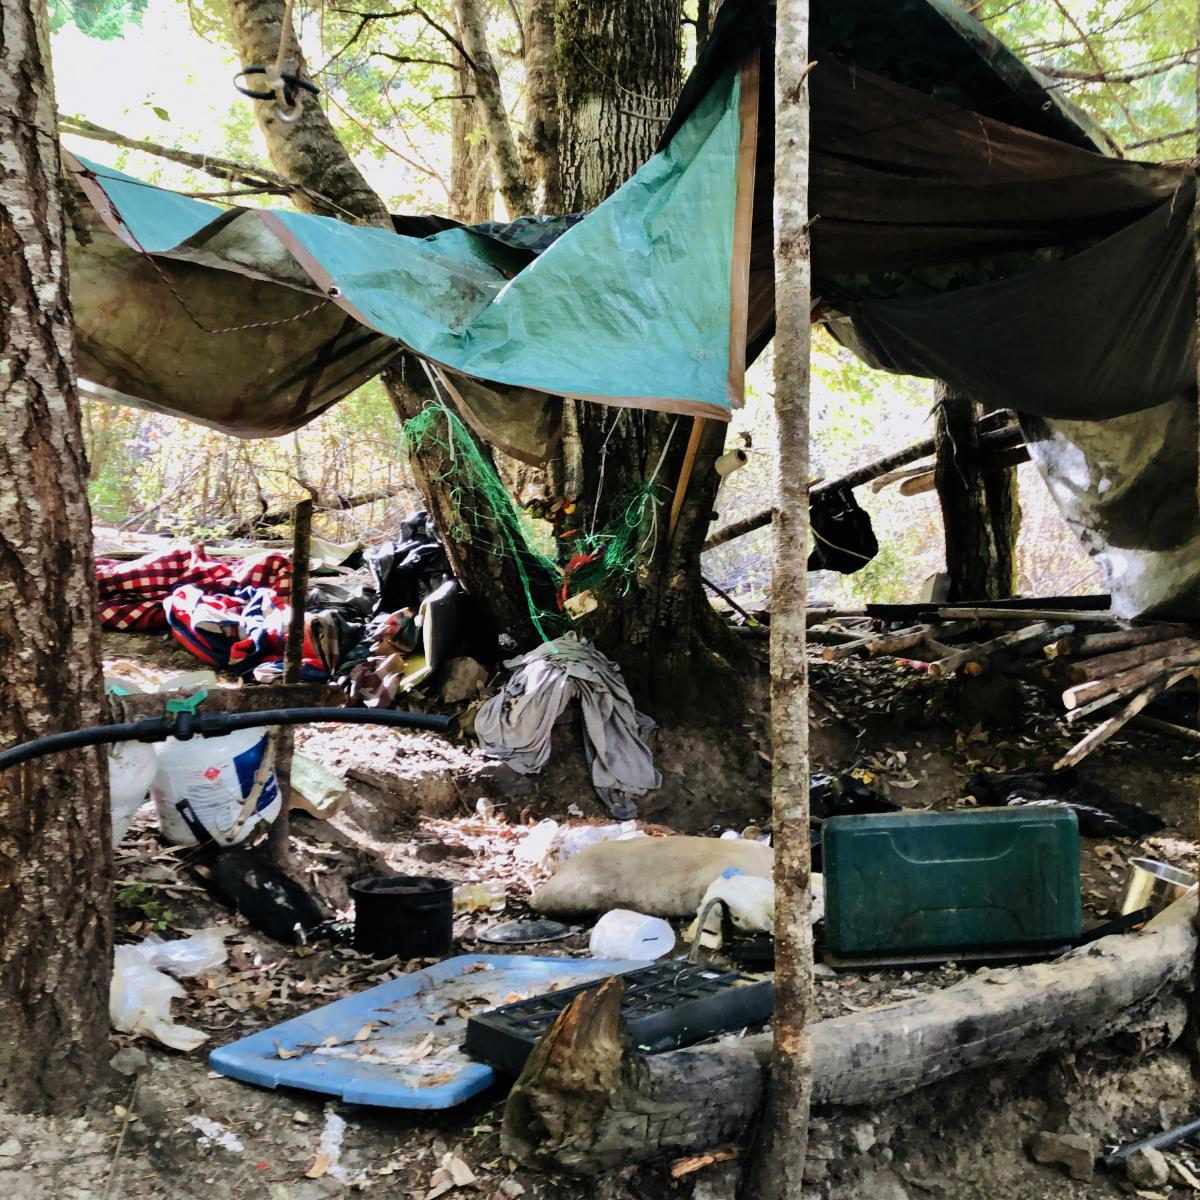 A sprawling grow and camp site was abandoned in California's Shasta-Trinity National Forest. There's some 3,000 pounds of trash here from discarded clothes and propane tanks to 3 miles of plastic irrigation pipes — an indication this site has likely bee